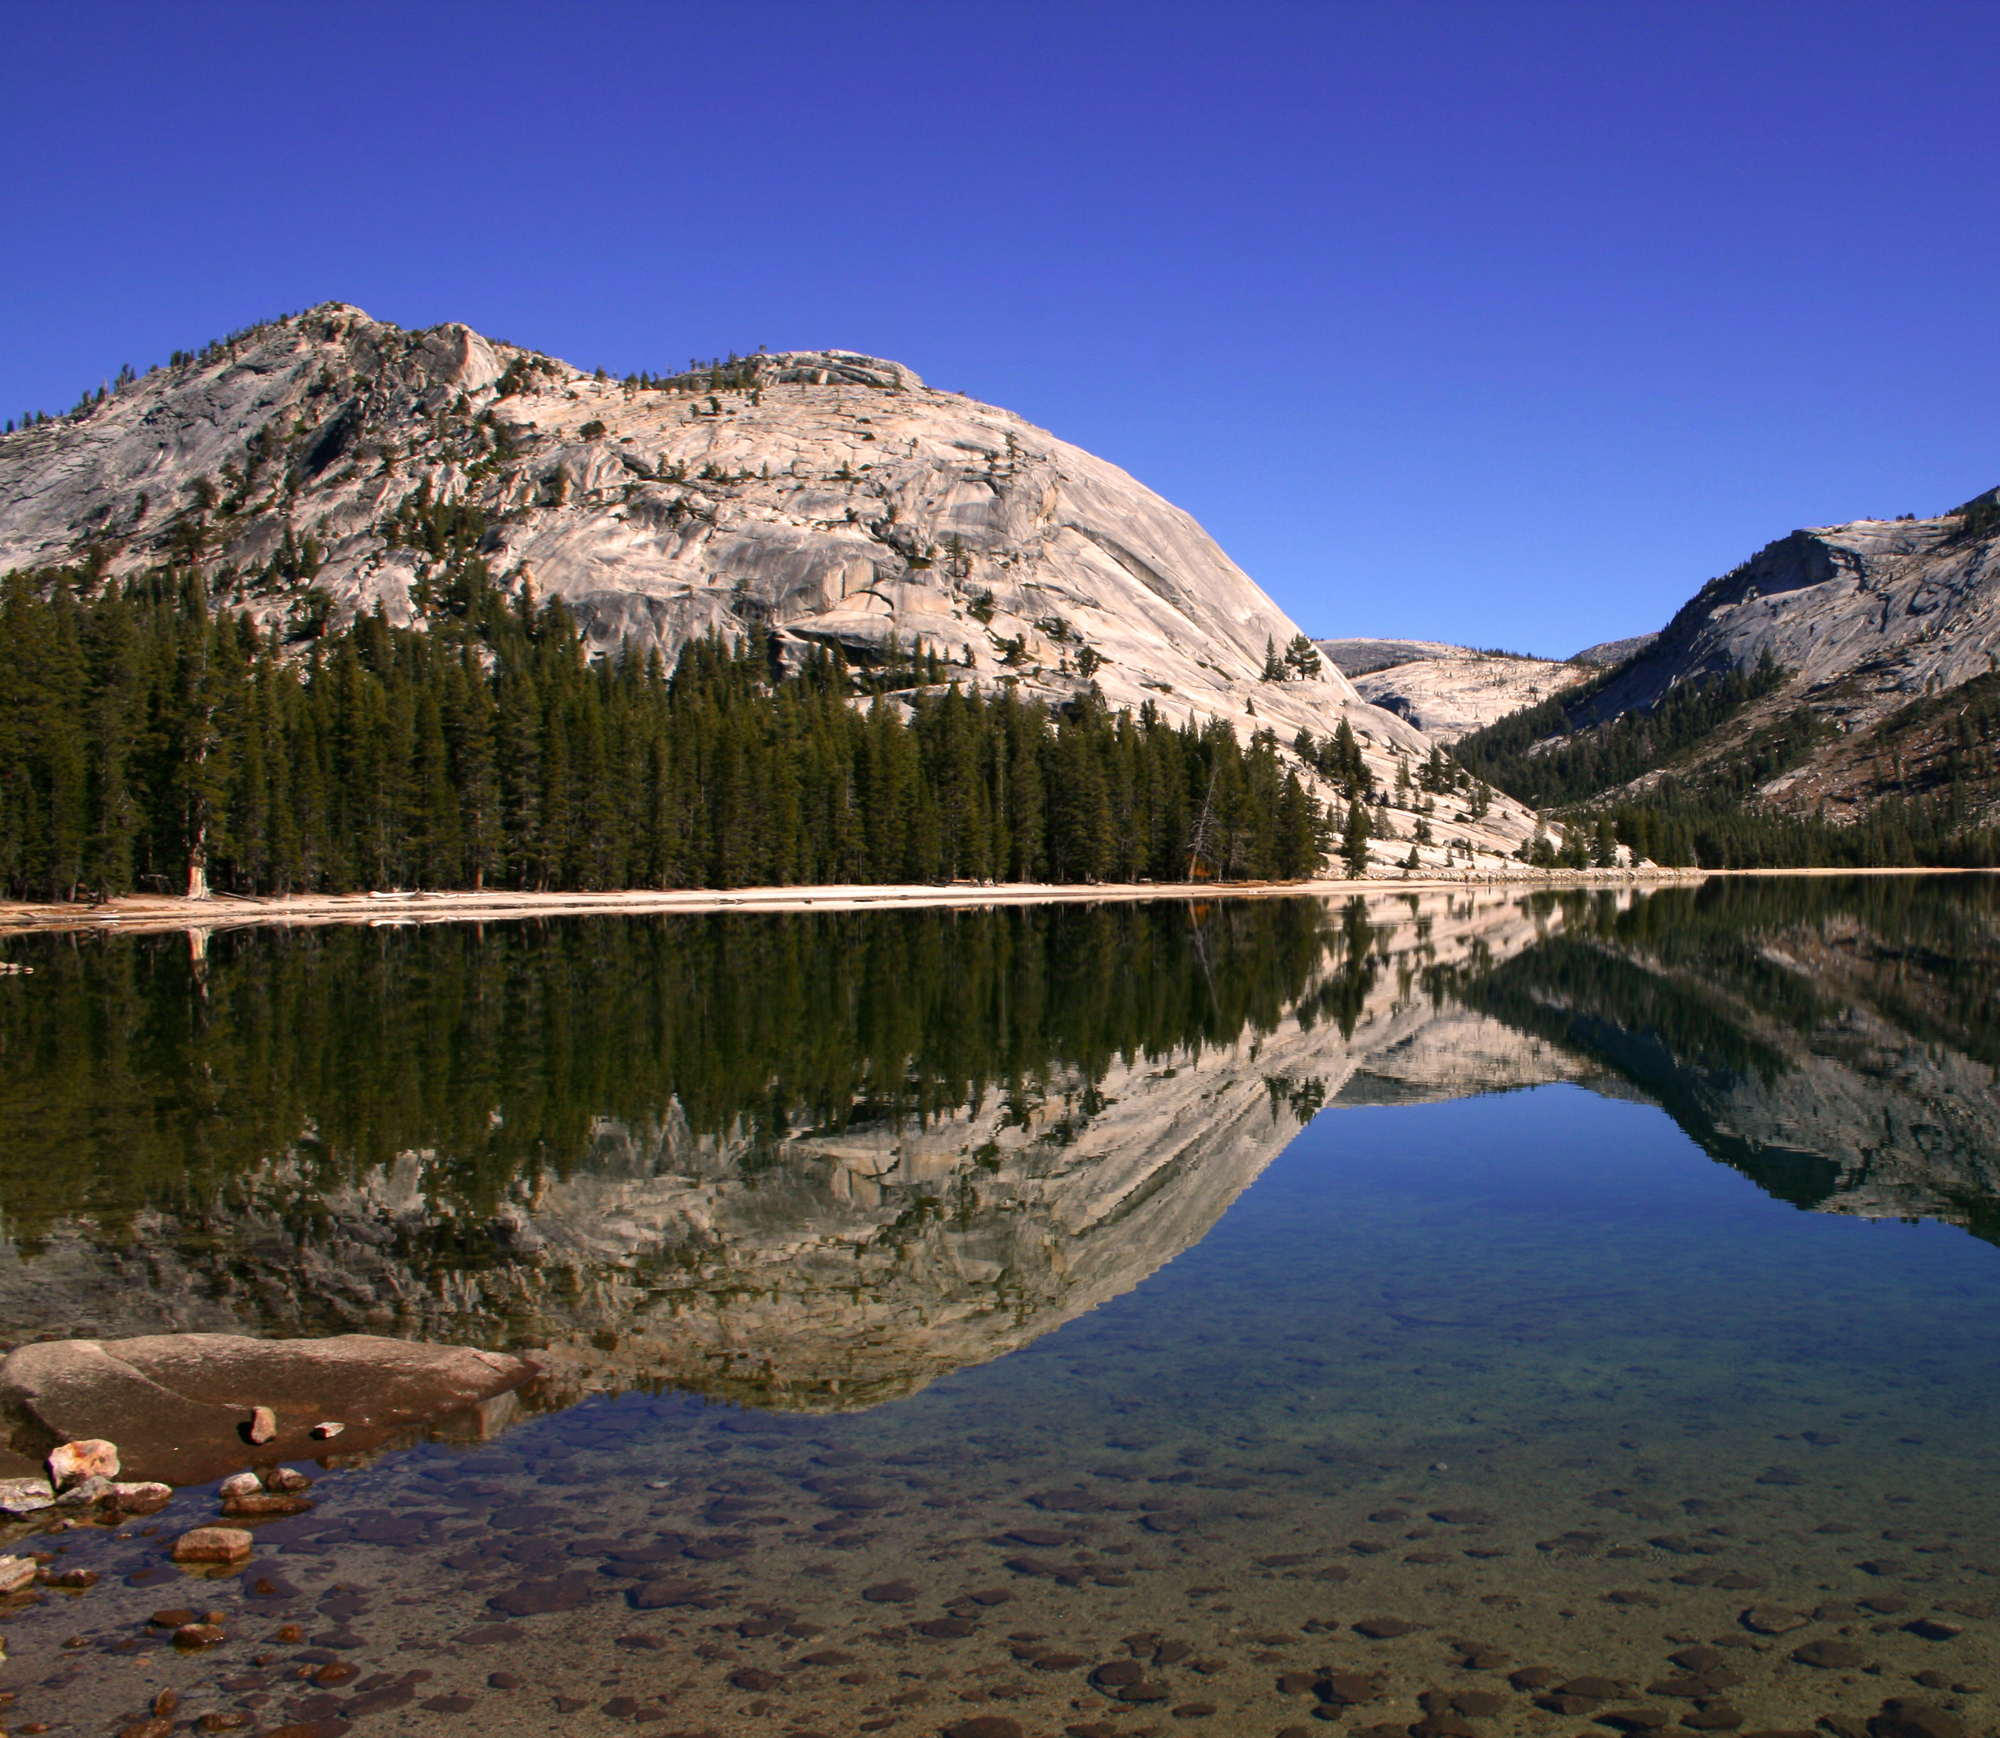 Summaries and links to detailed reviews for more than 50 hikes in Yosemite and nearby areas.